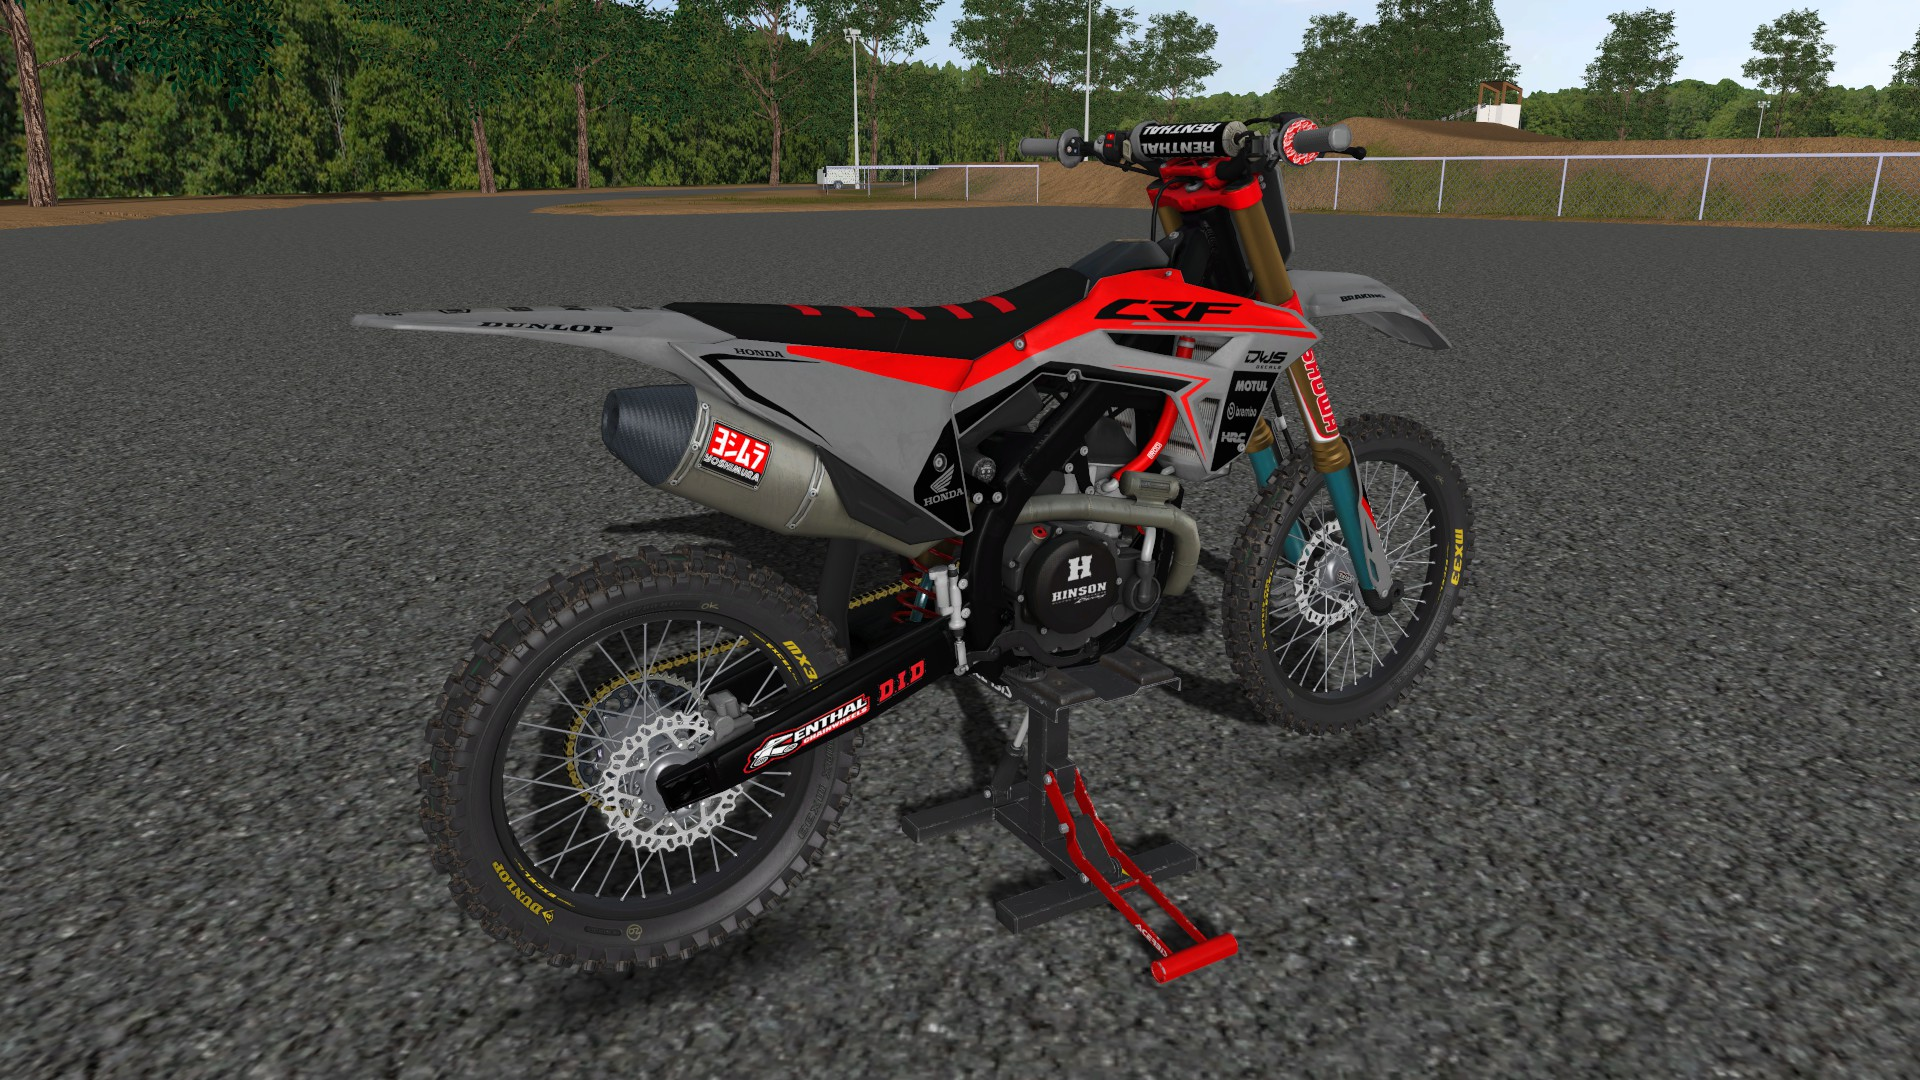 DWS Decals CRF250/450 2021 By Andersson198